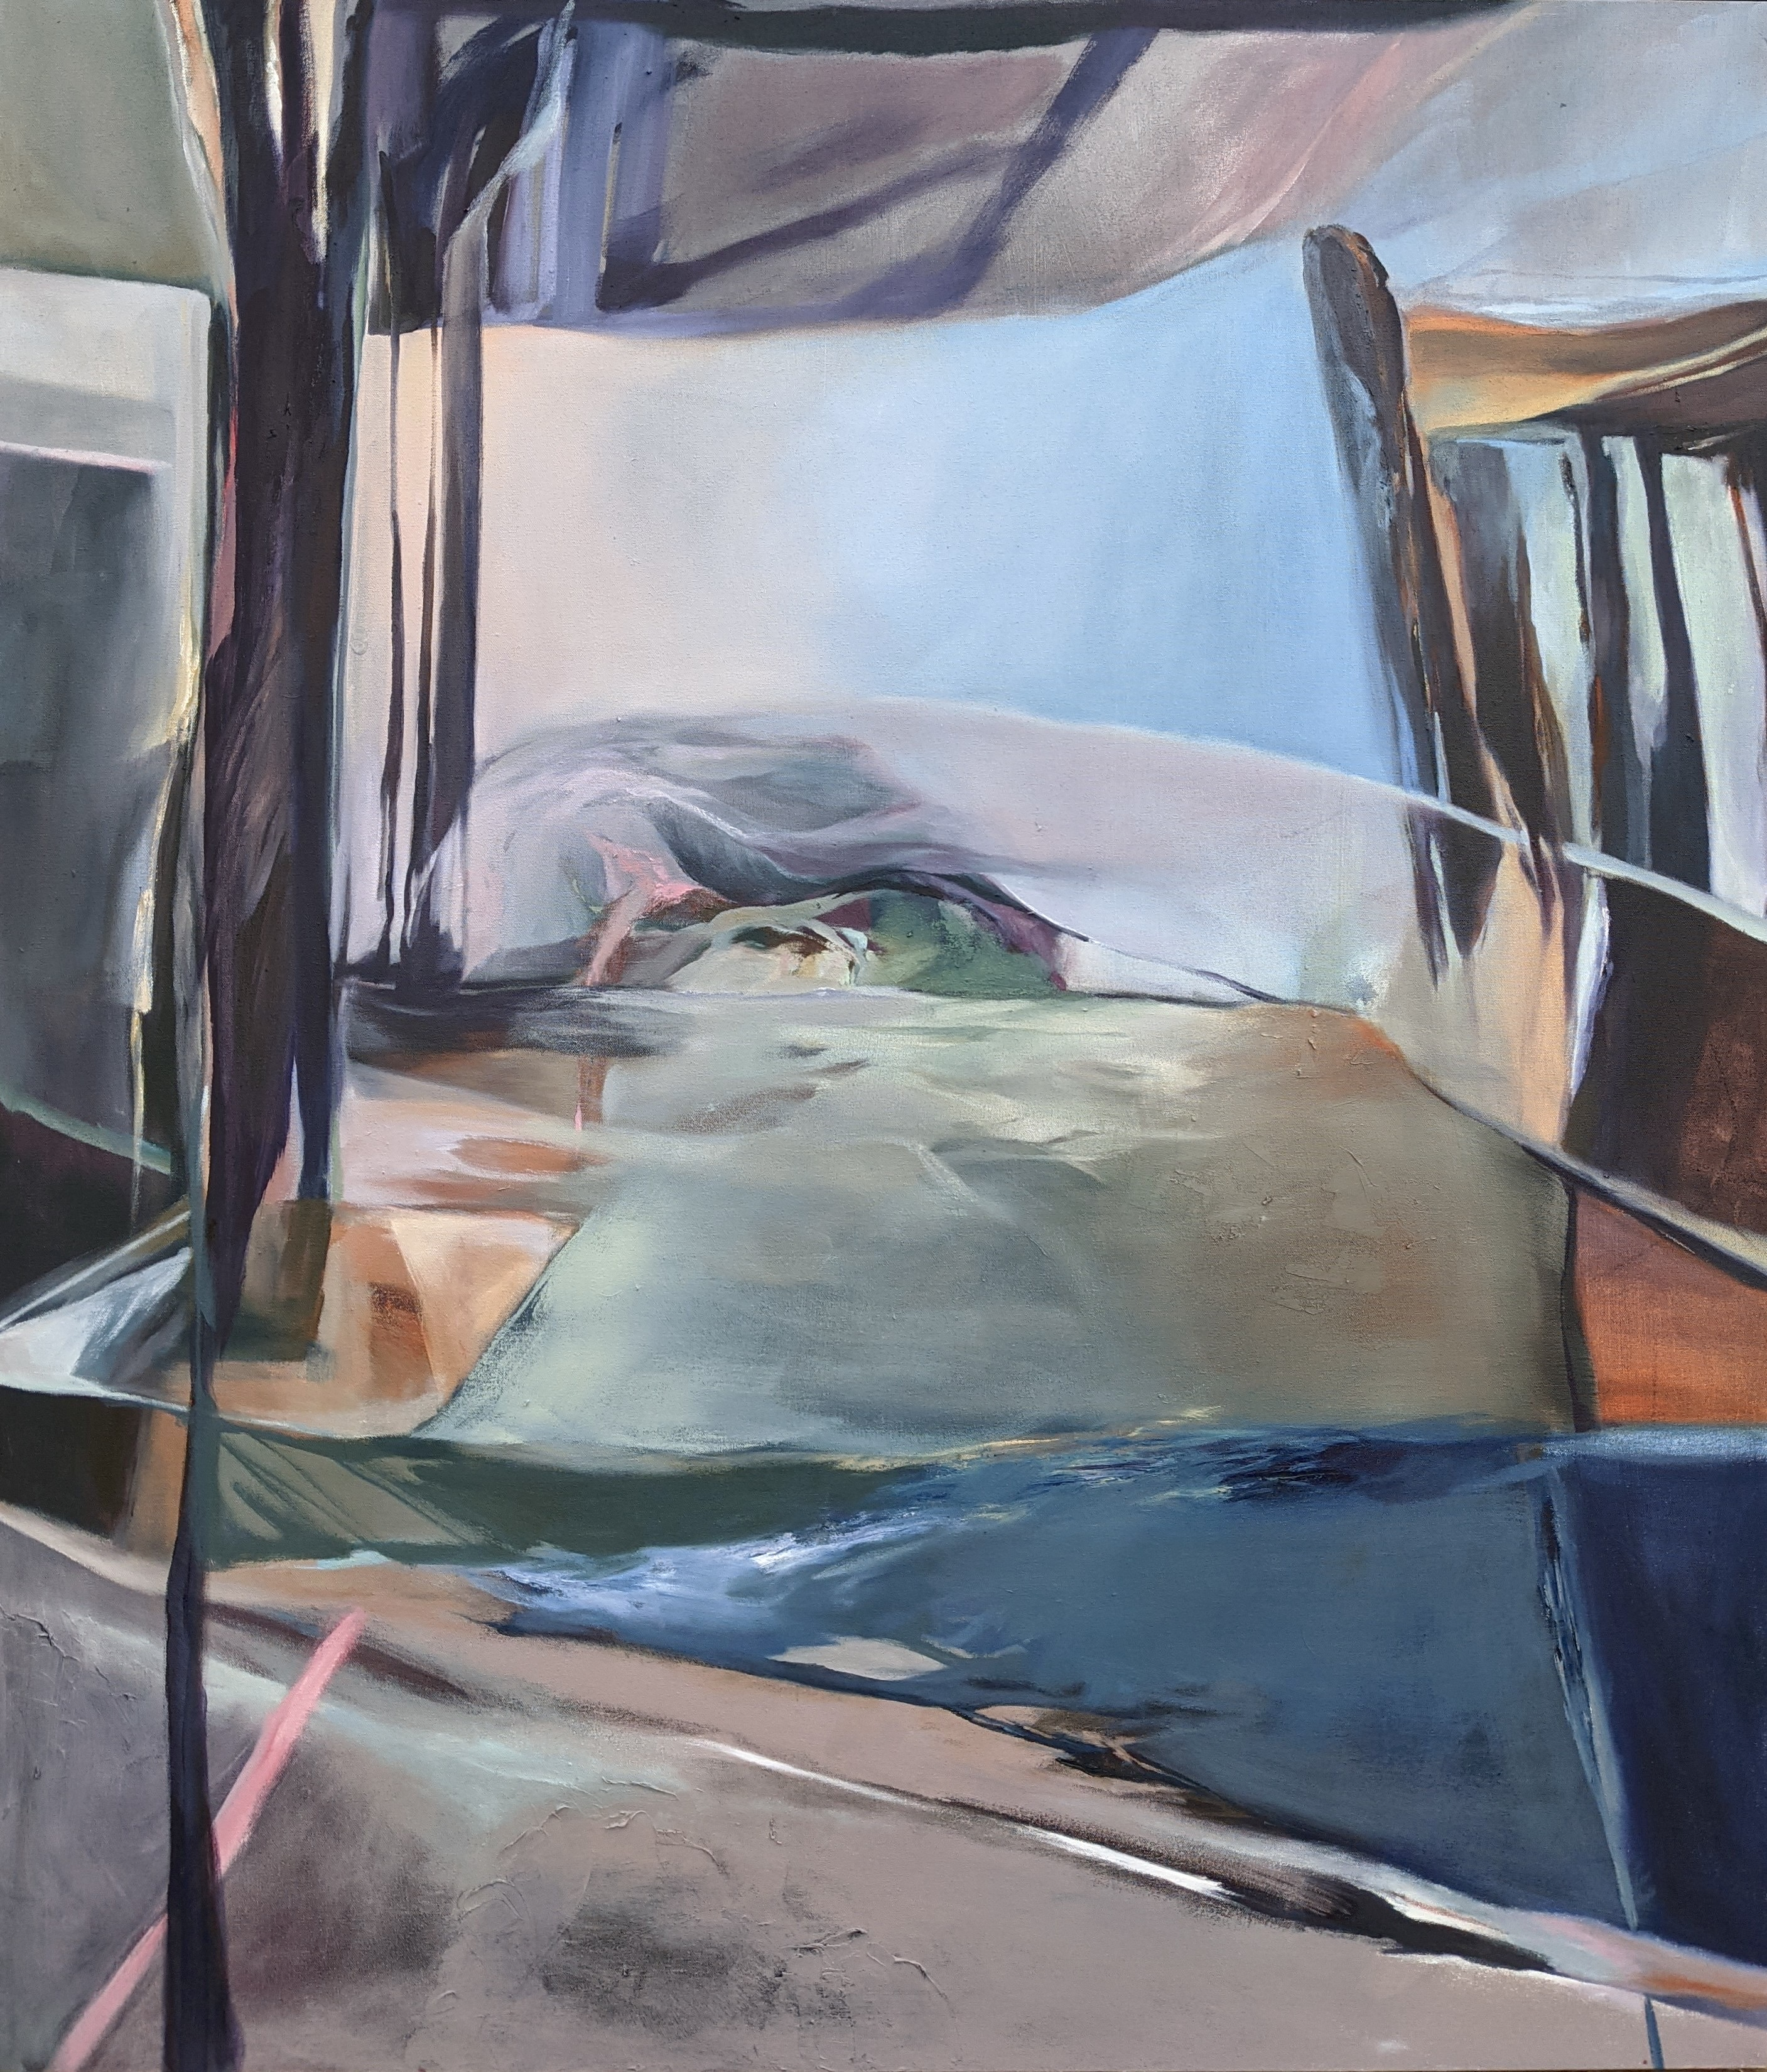 Chenxi Gao, Floating, Oil on Canvas, March 2021, 52 x 48